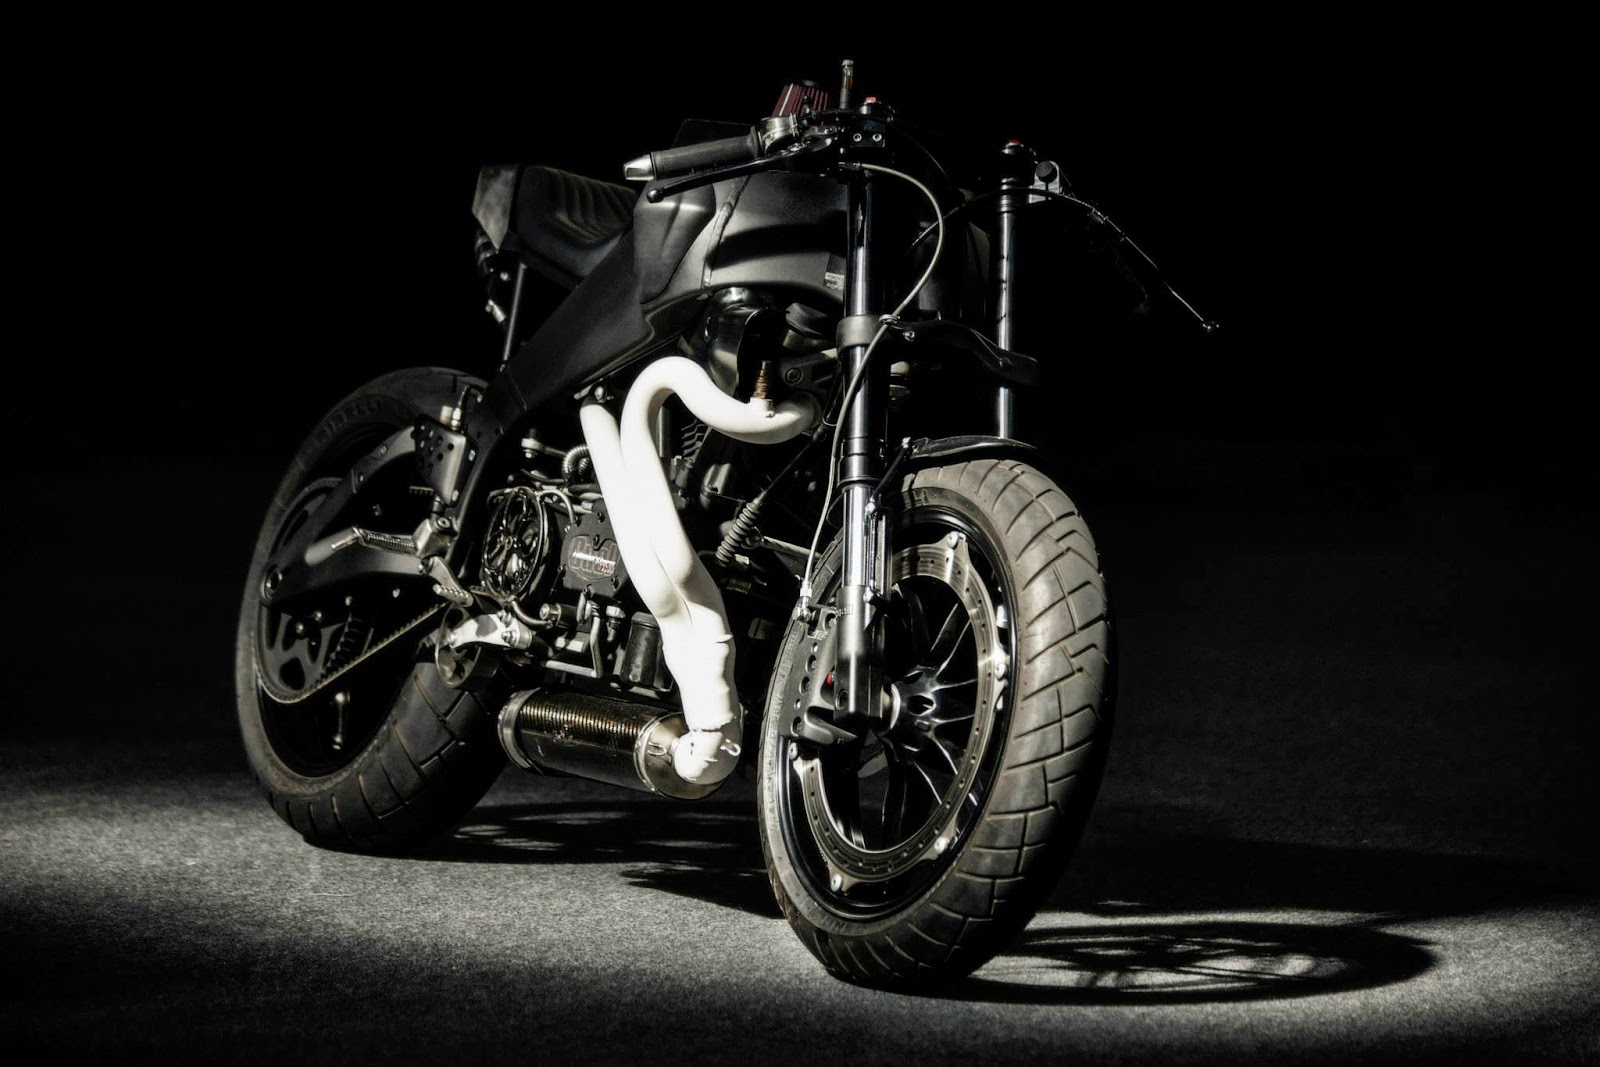 Buell MK24 by Motokouture